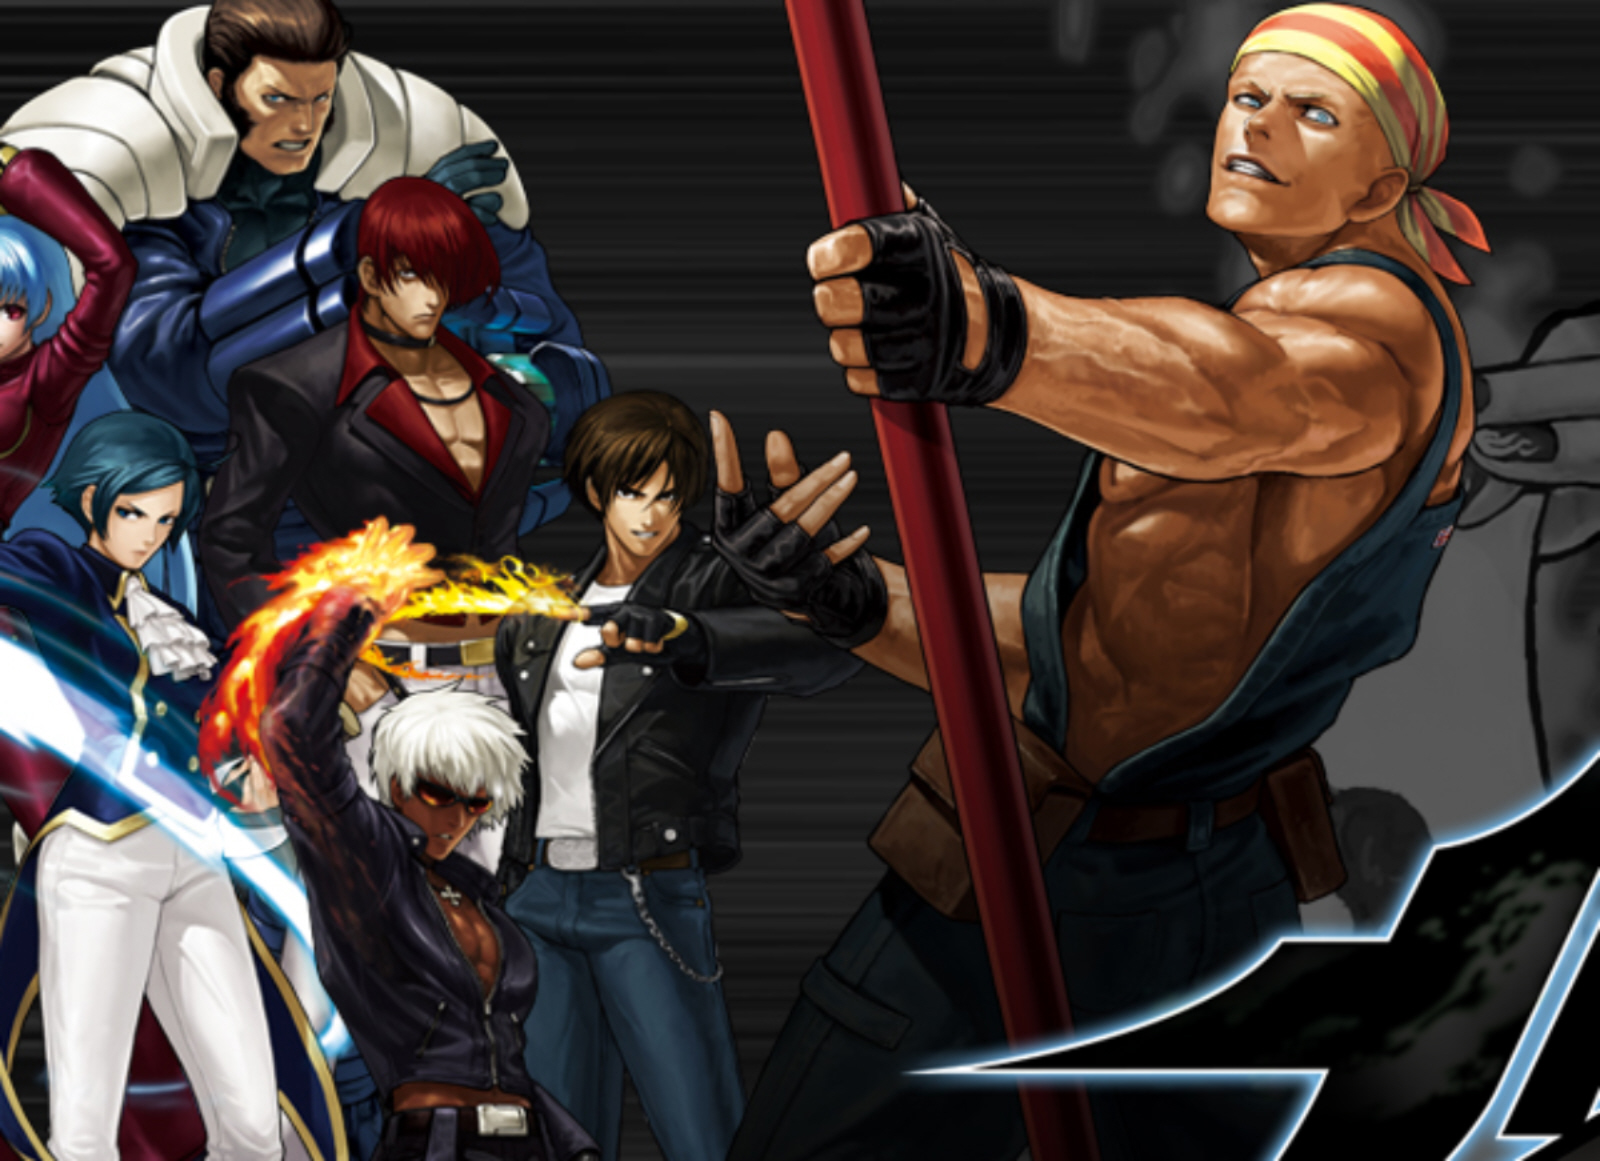 Artwork from The King of Fighters XIII for Xbox 360 and PS3